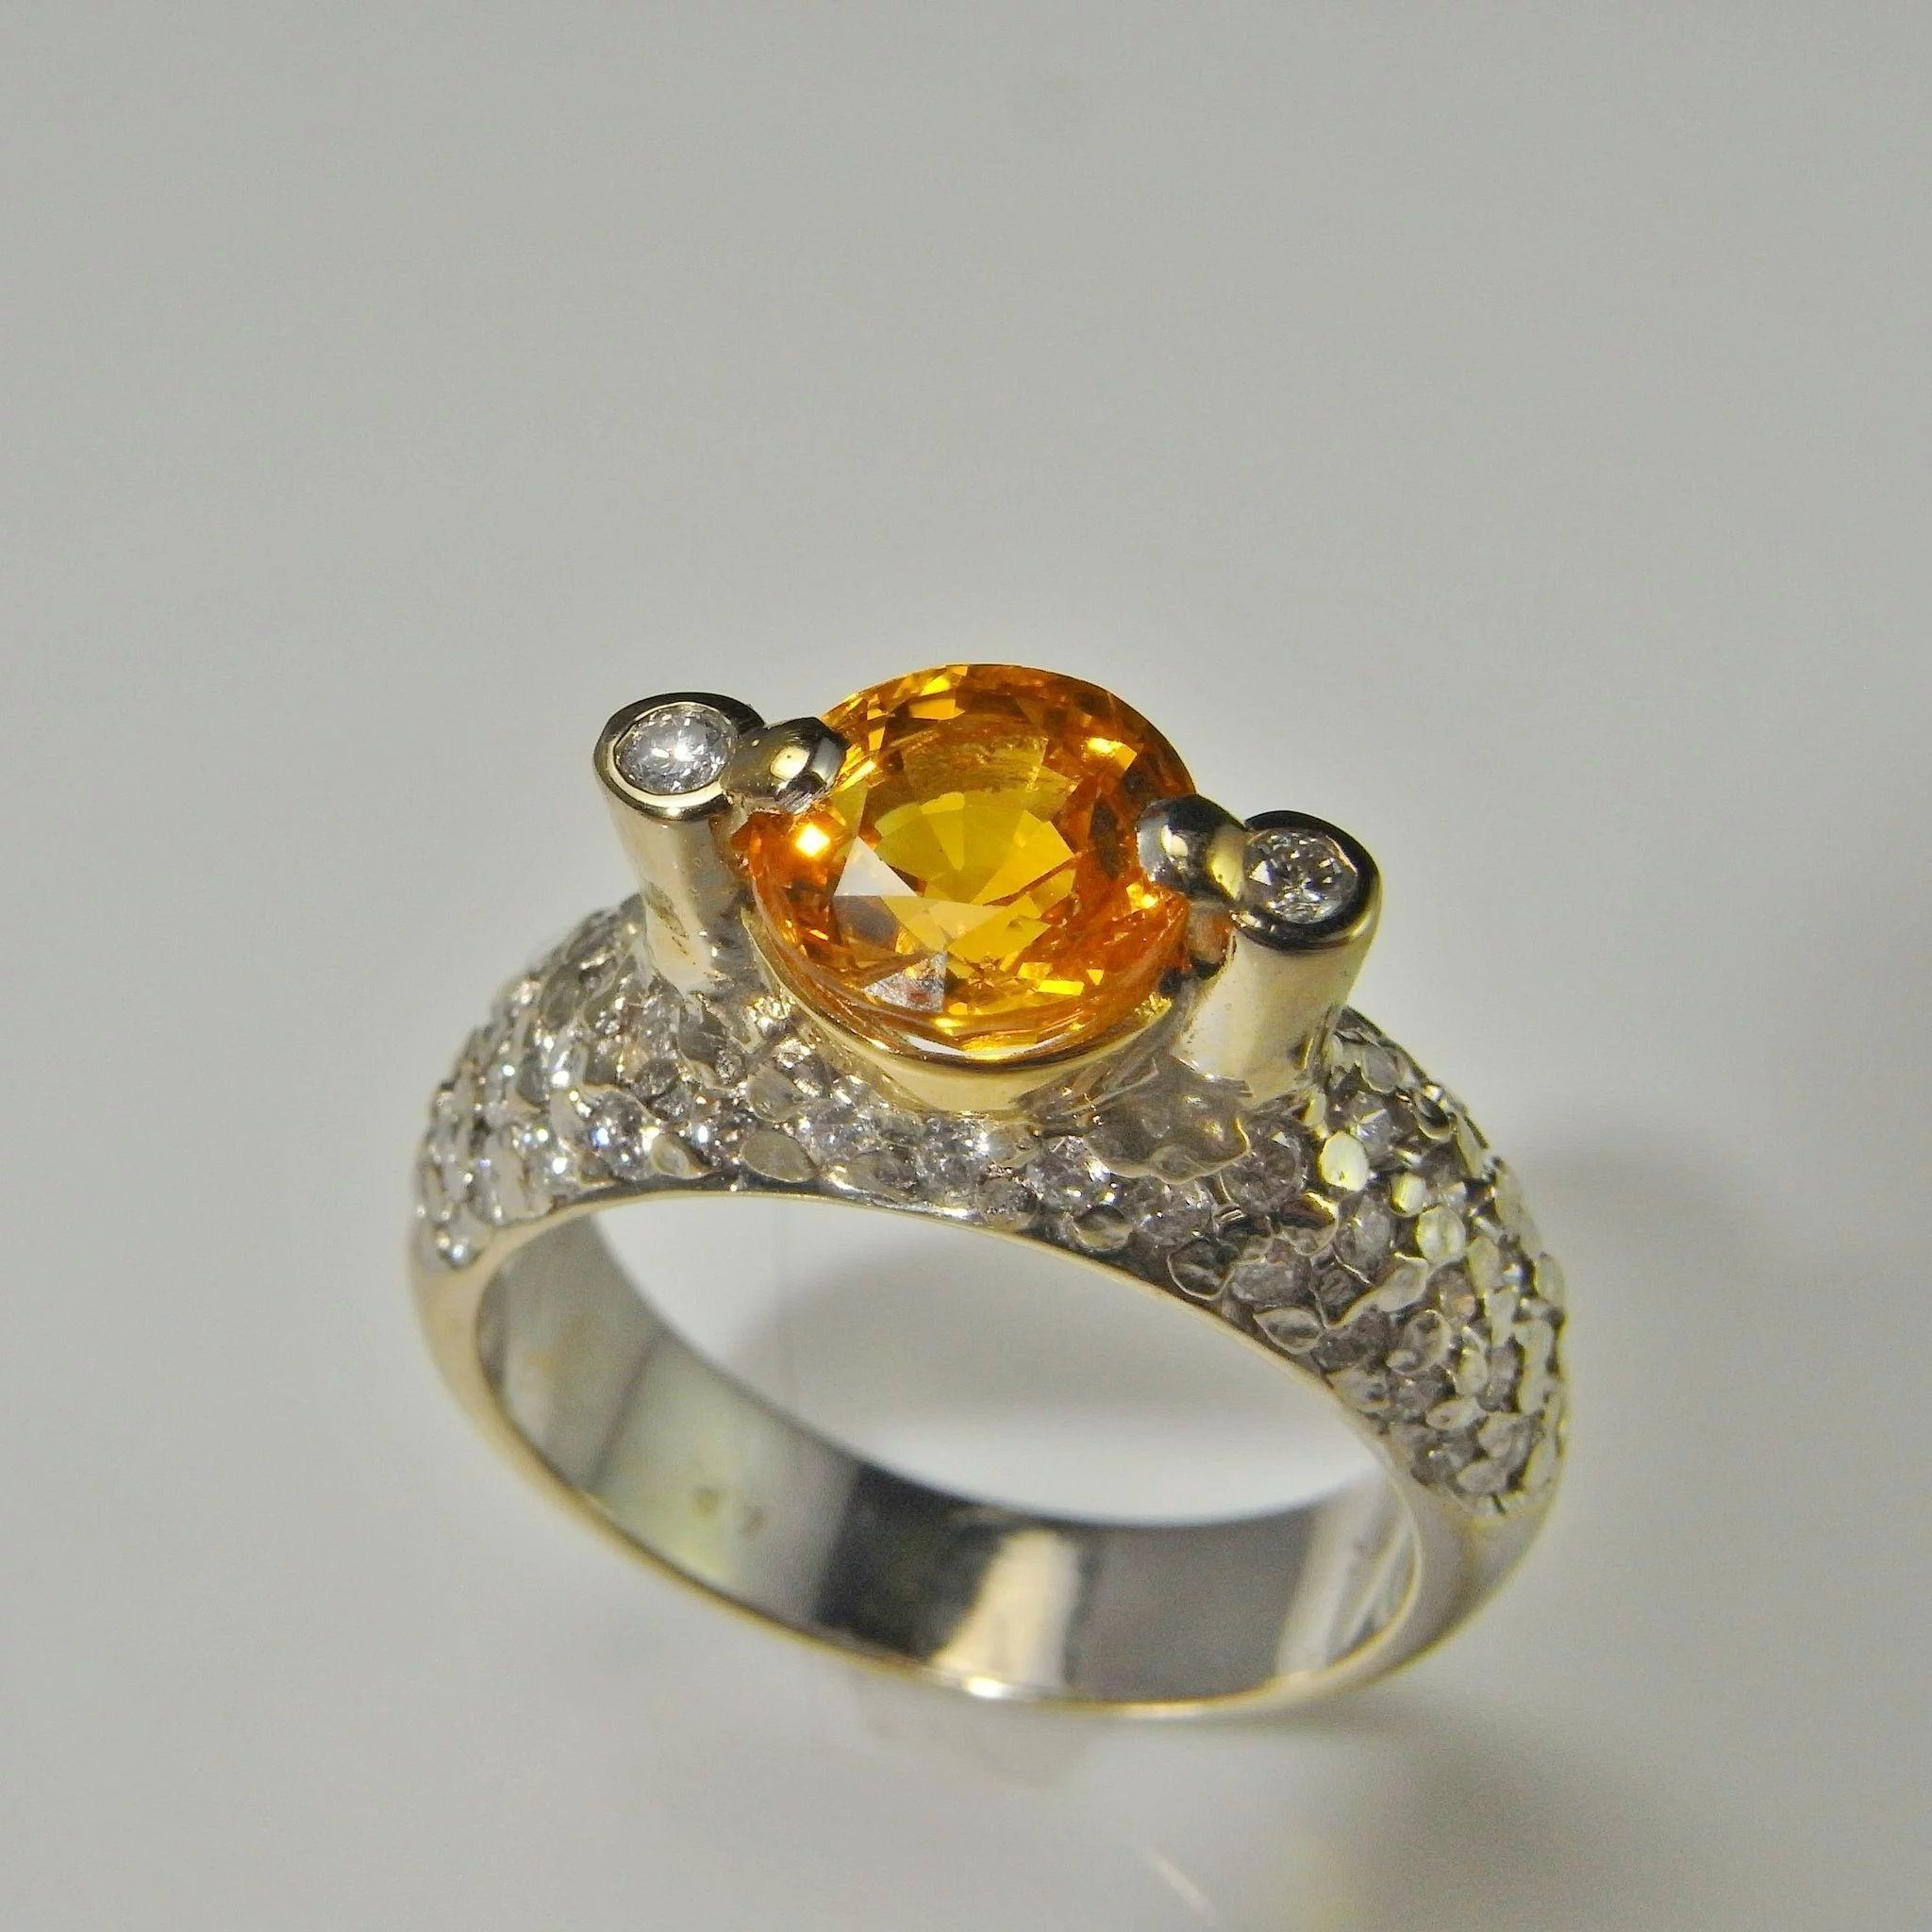 at b engagement ring yellow trapezoid id three master diamond j sapphire stone rings orange emerald cut jewelry